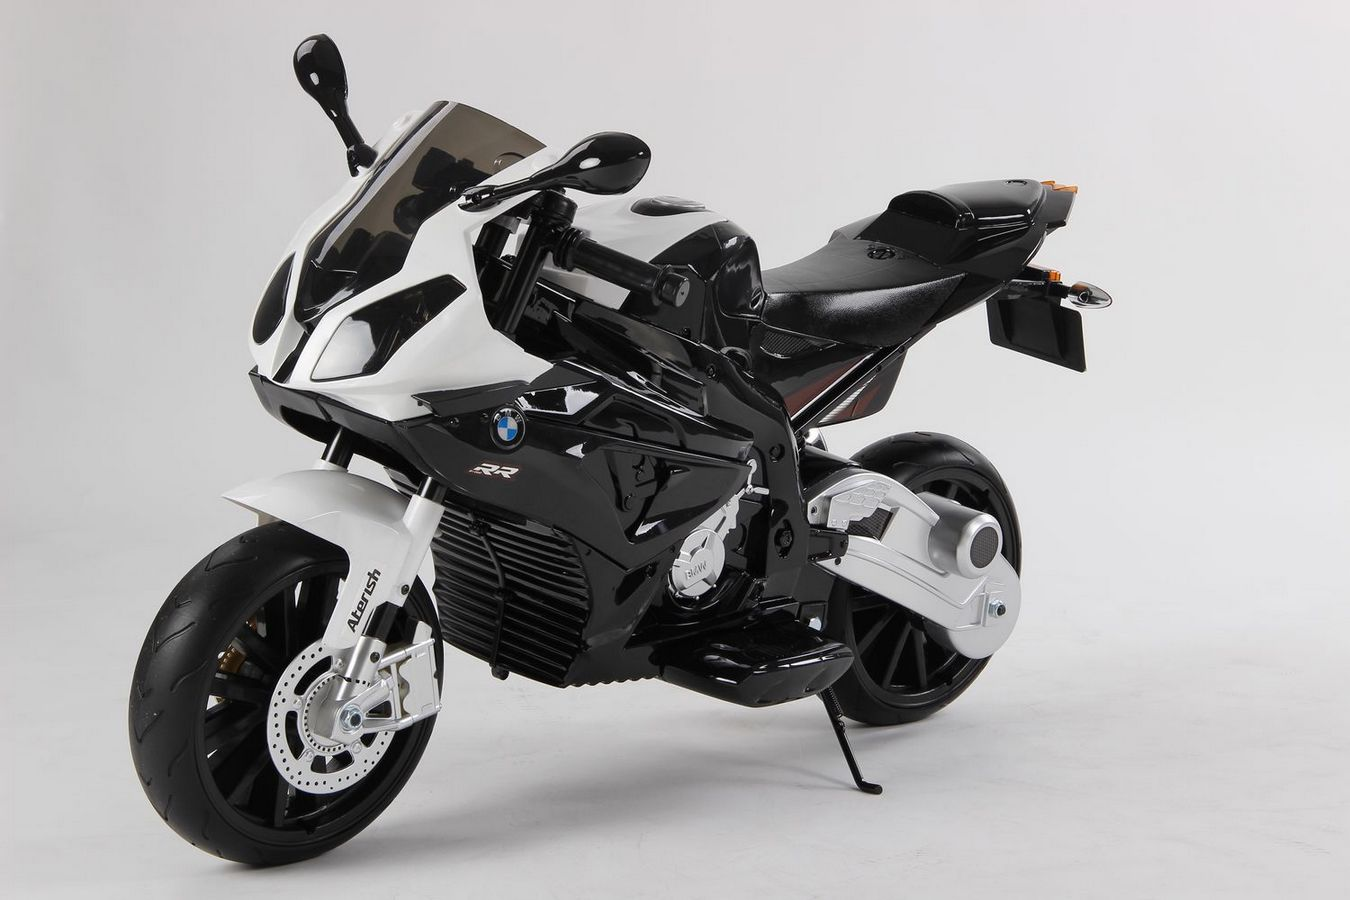 bmw s1000rr moto lectrique enfant 12v 2 6 ans. Black Bedroom Furniture Sets. Home Design Ideas